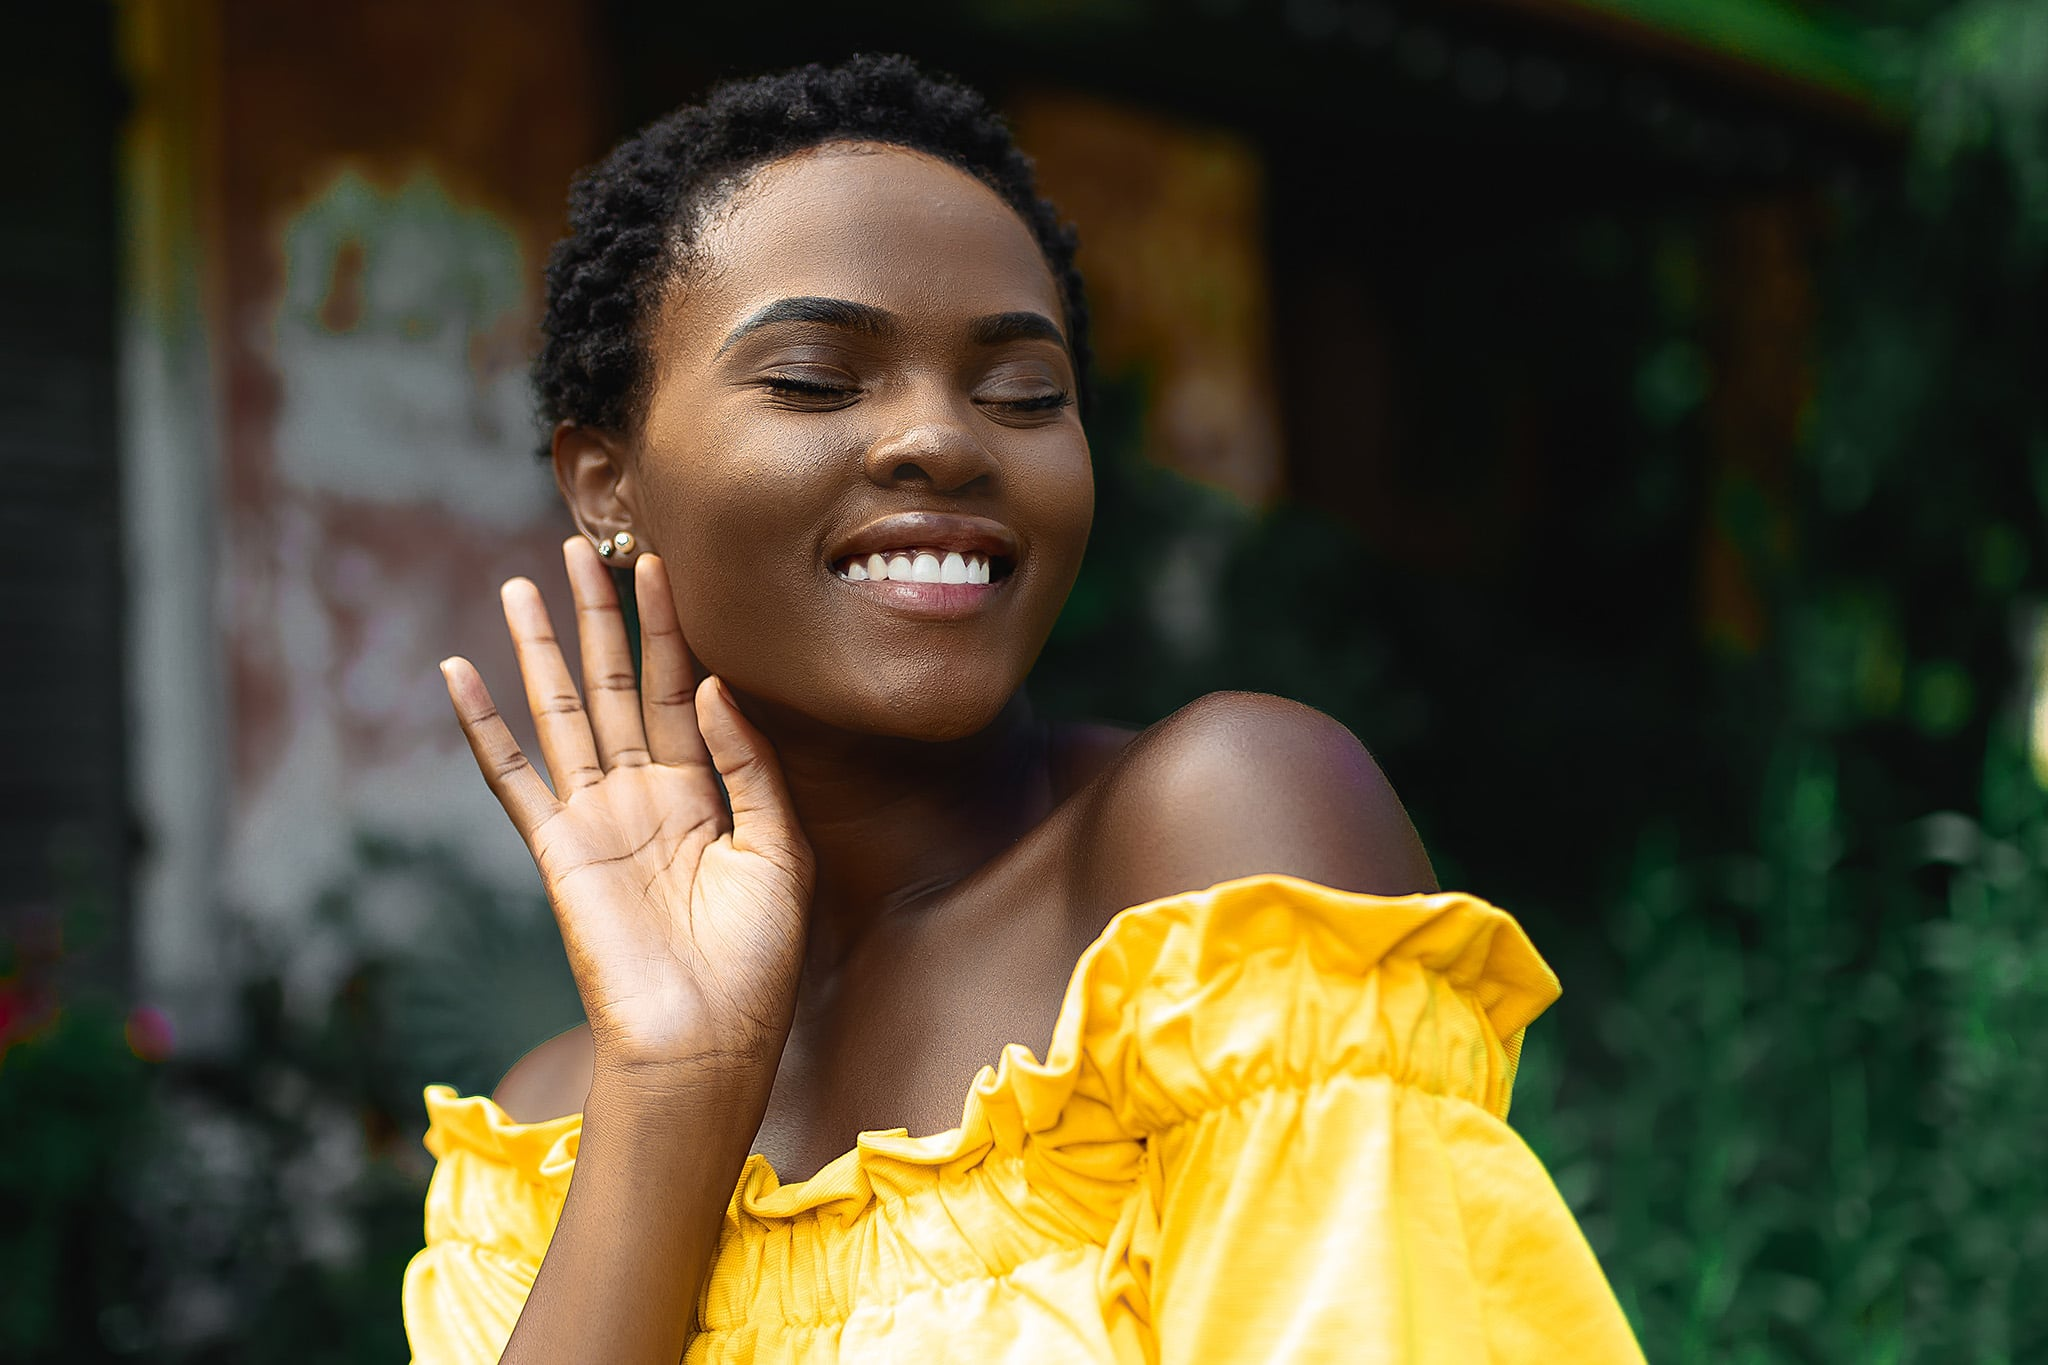 A Black woman is smiling with pure joy in an off-the-shoulder yellow dress symbolizing joy as resistance in intersectional feminism